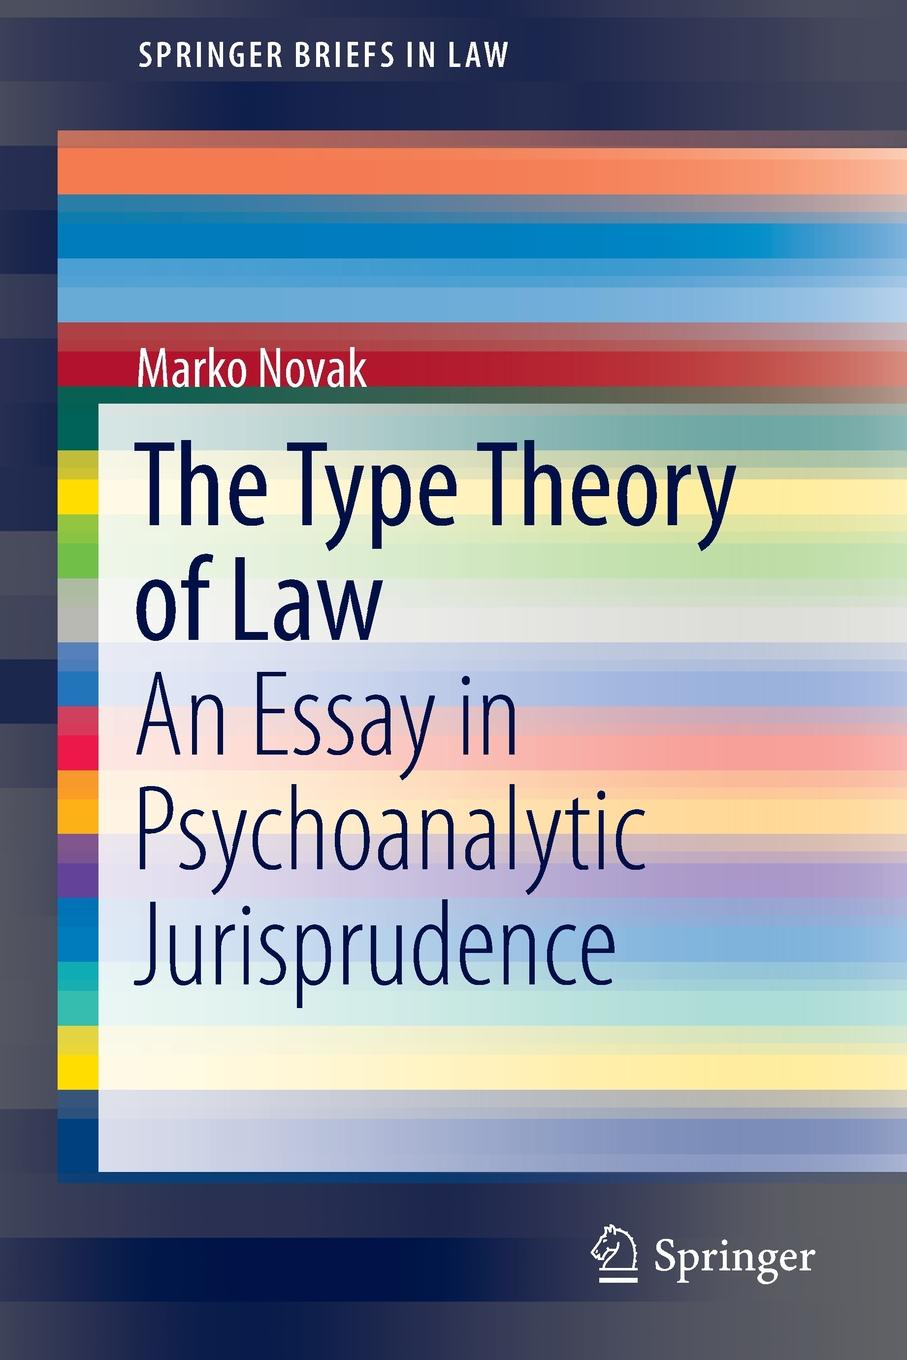 The Type Theory of Law. An Essay in Psychoanalytic Jurisprudence